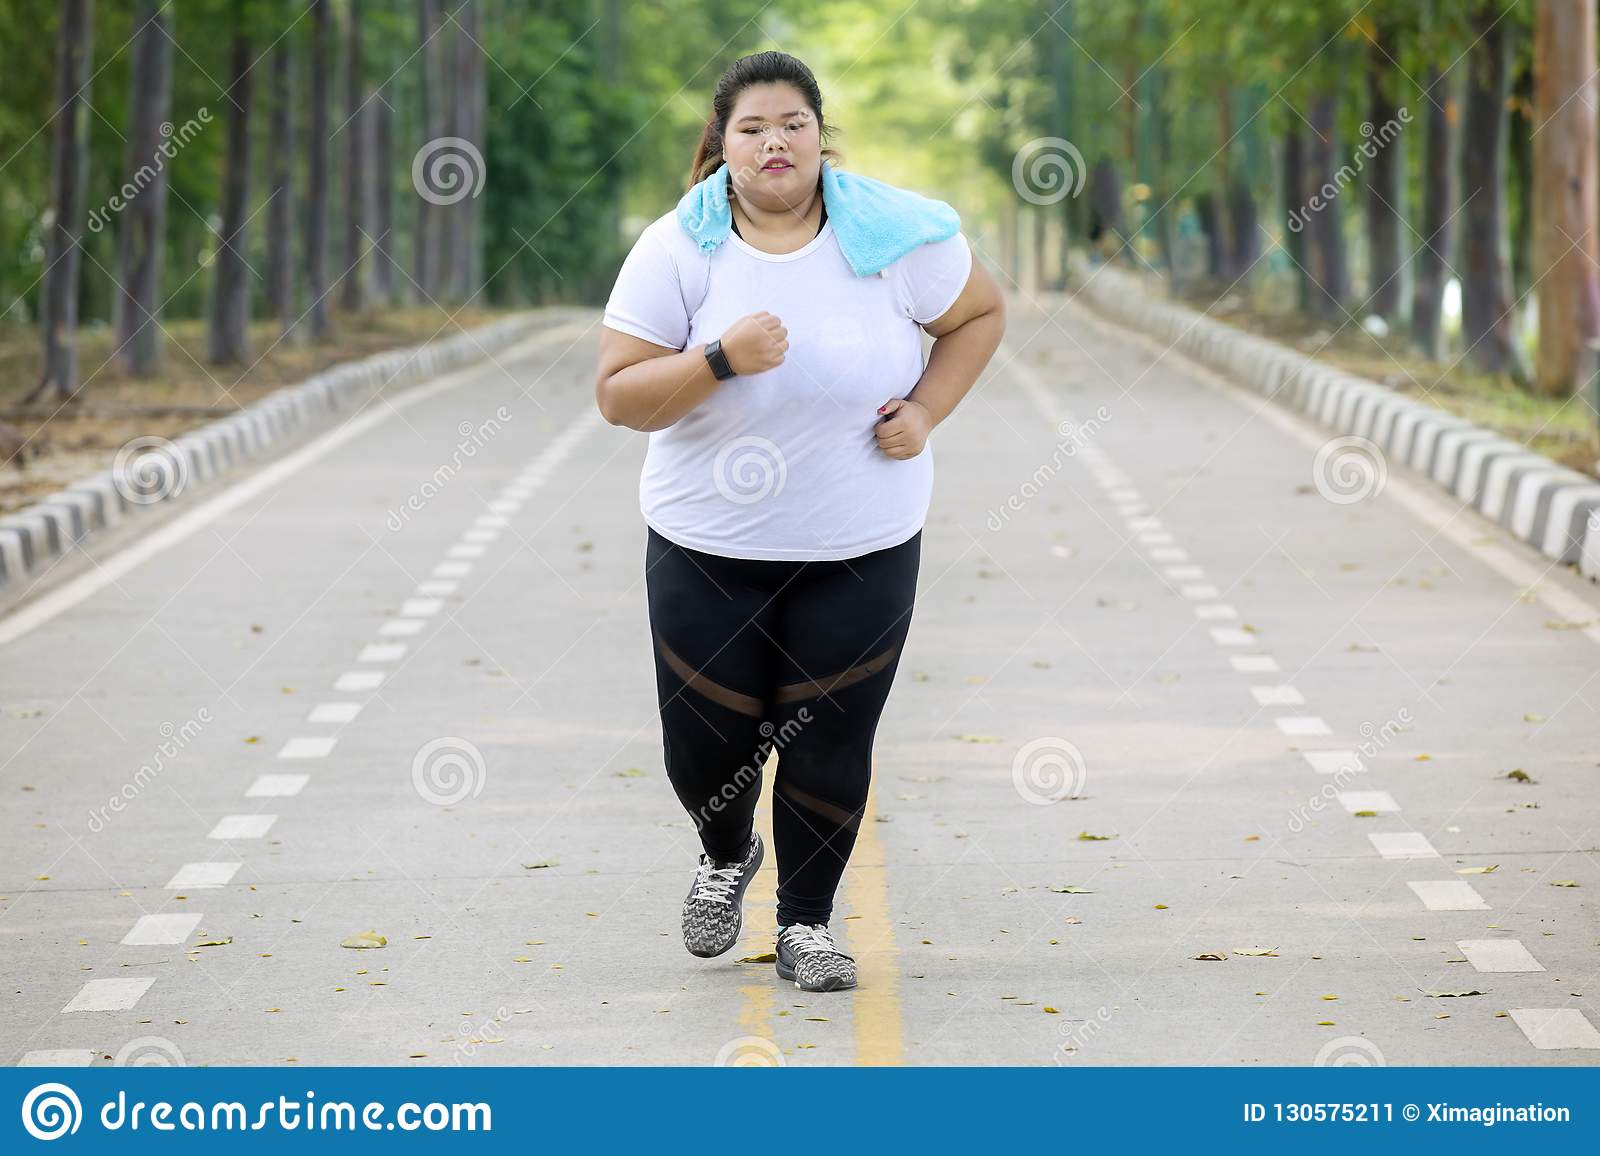 Overweight Woman Doing Runs Exercise On The Road Stock Image Image Of Jogging Jogger 130575211